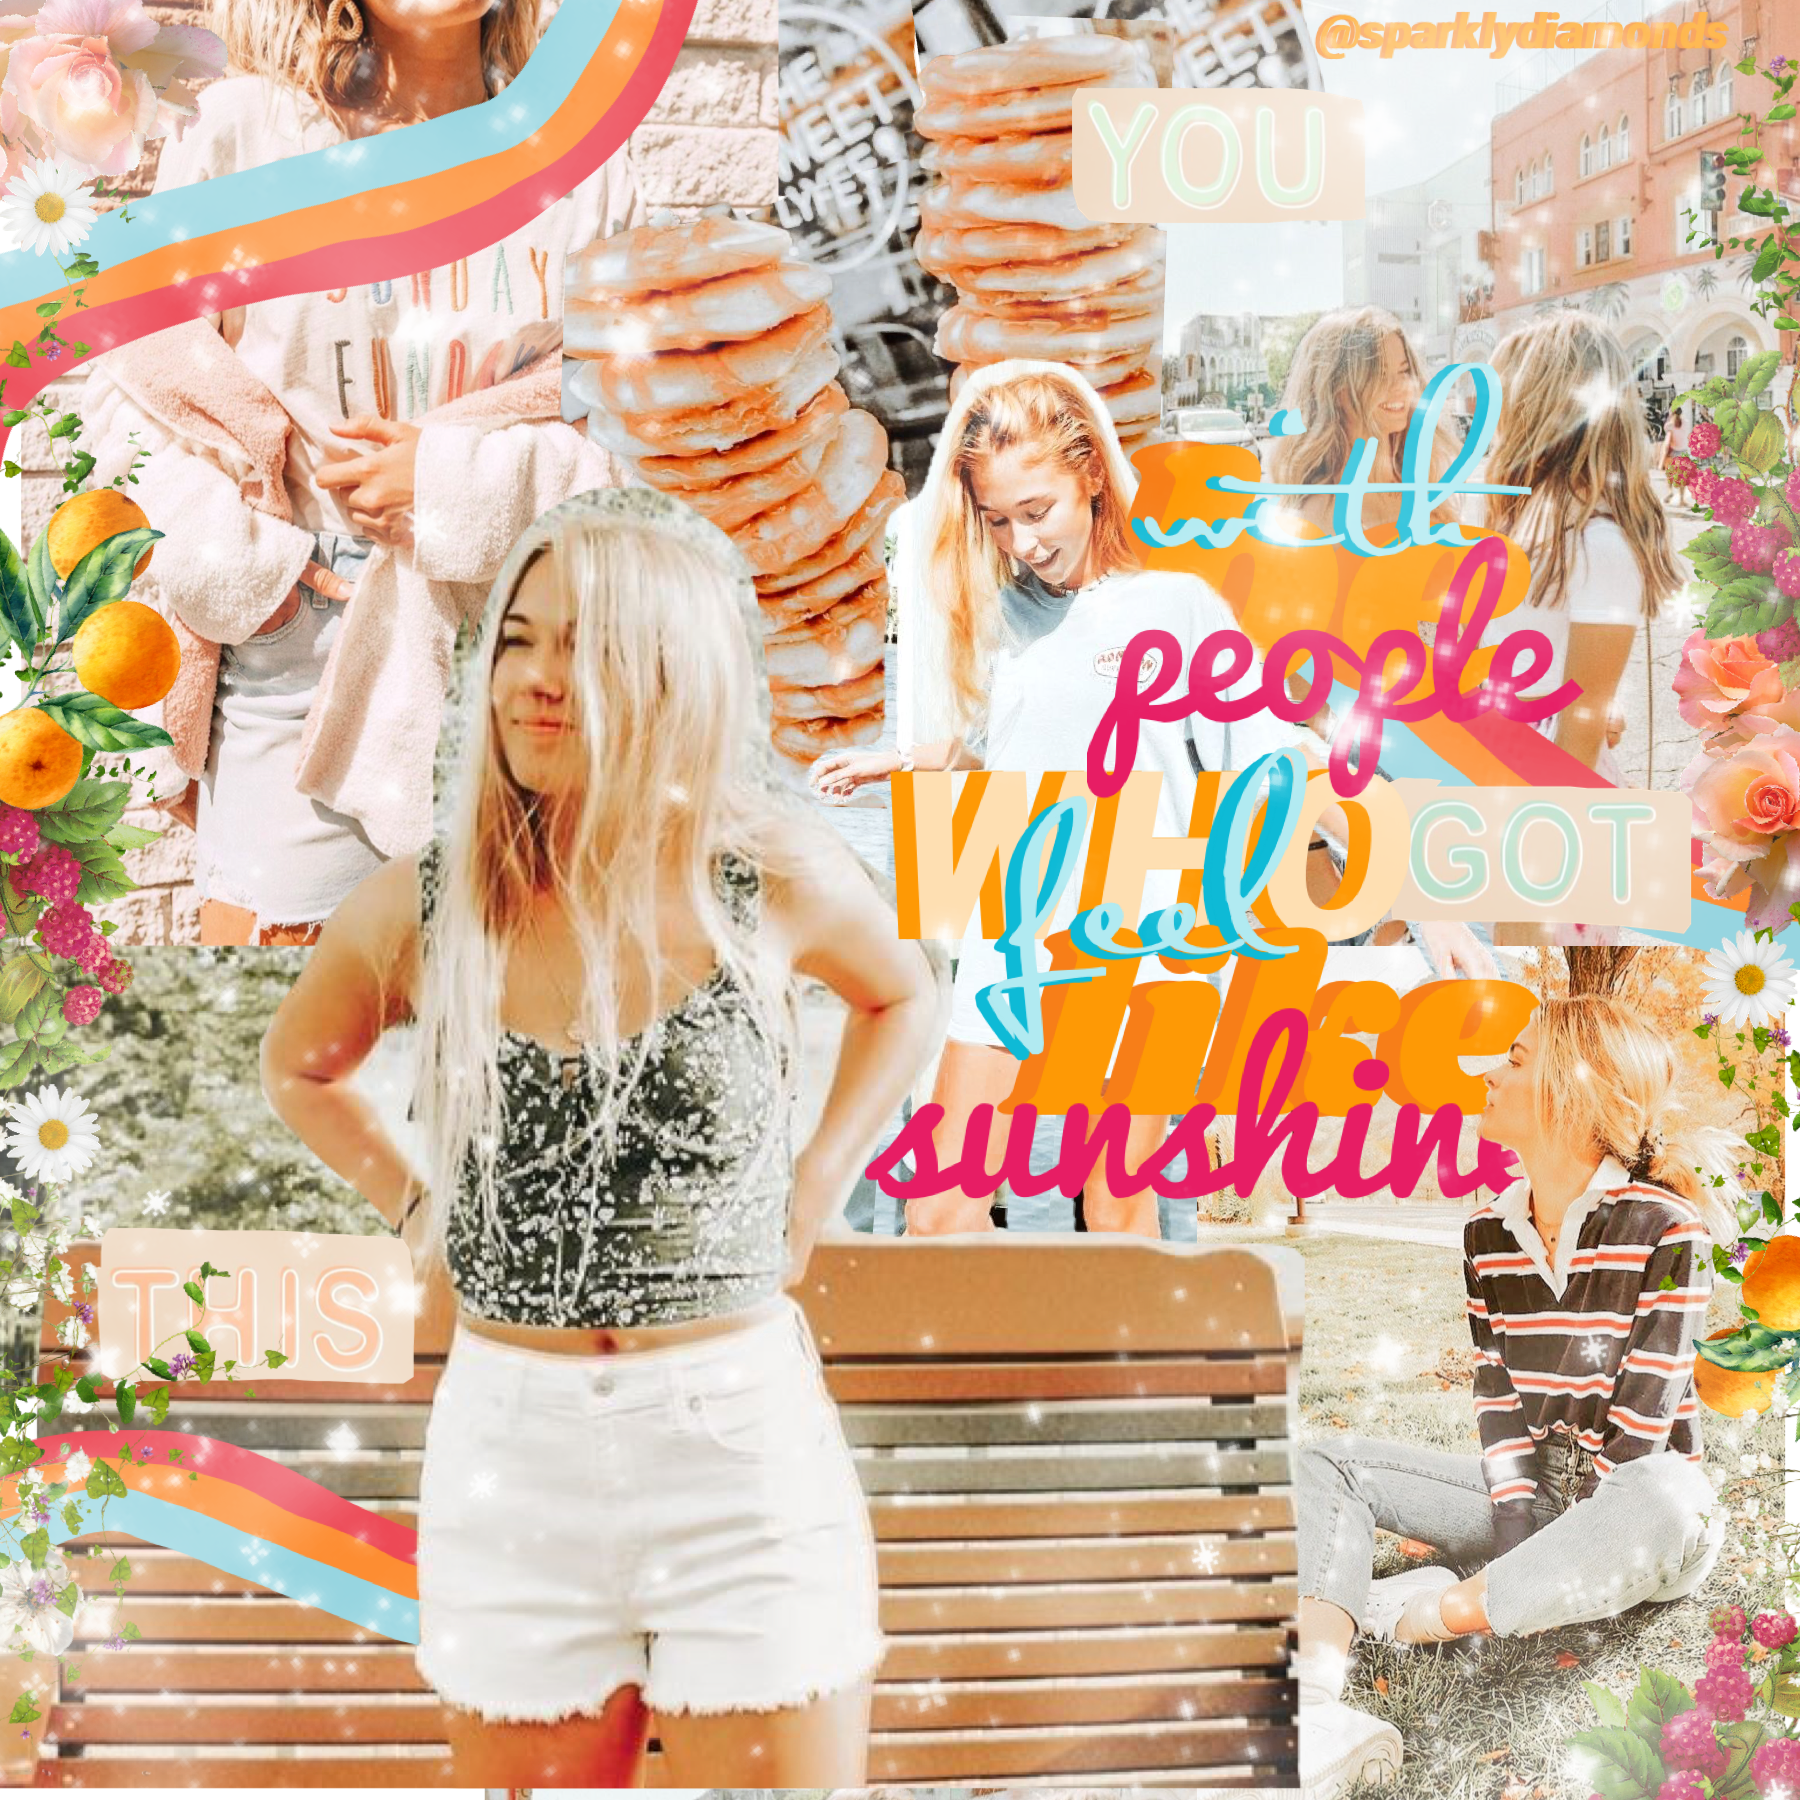 hello ^ this collage is totally just weird :) [𝕥𝕒𝕡] I really like the pic of the girl there :) but I didn't know how to add her to a good collage😢I wanted to make a better one than this tho :// so how is everyone? Stay safe!